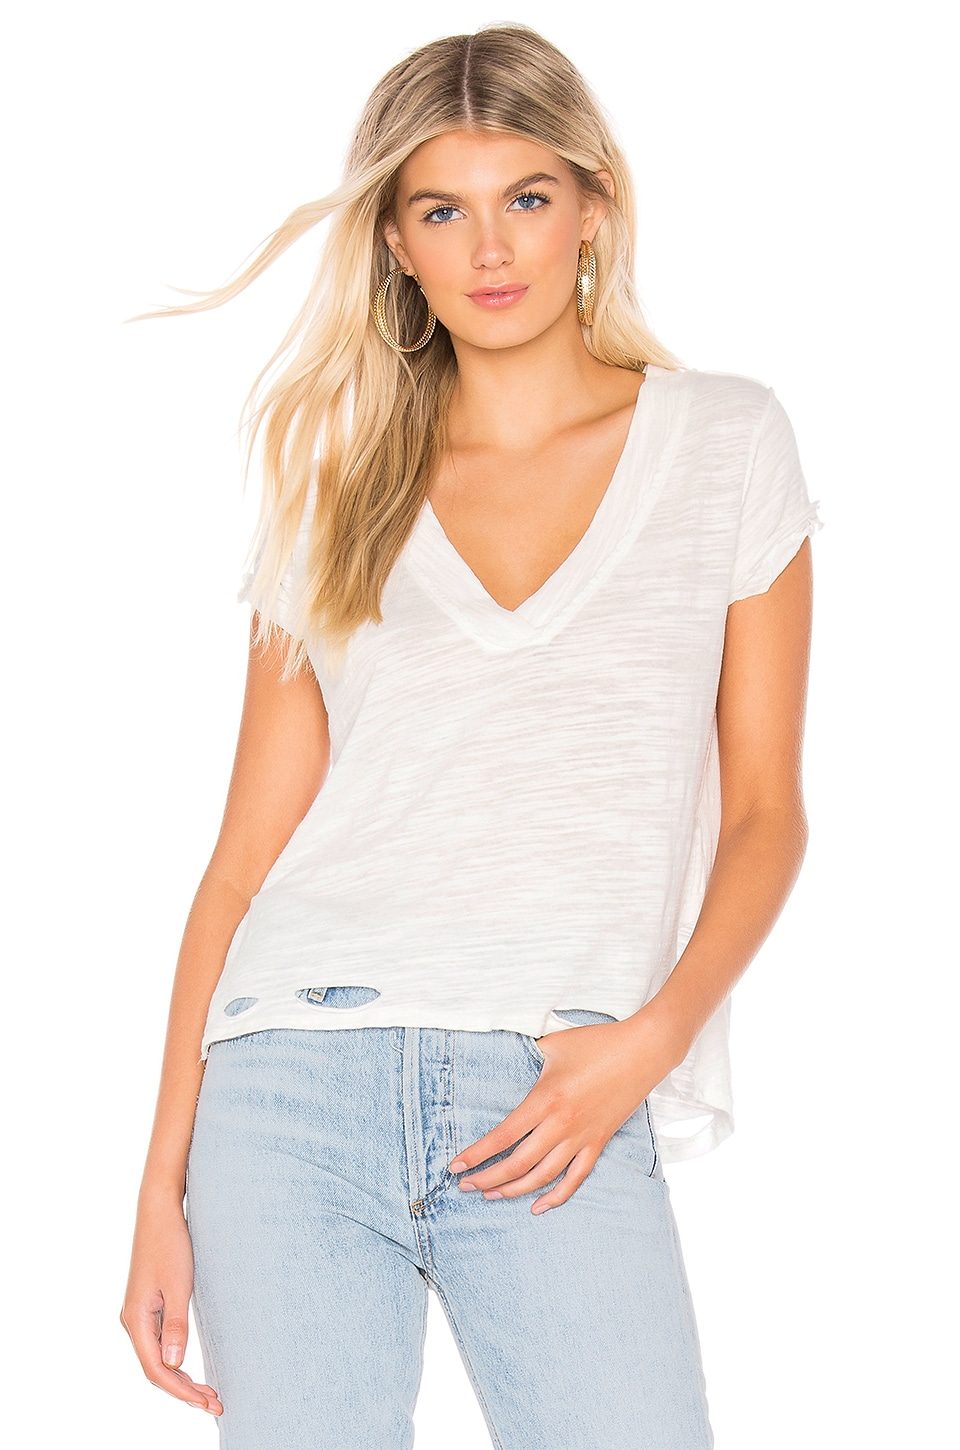 Free People Sundance Tee in Ivory